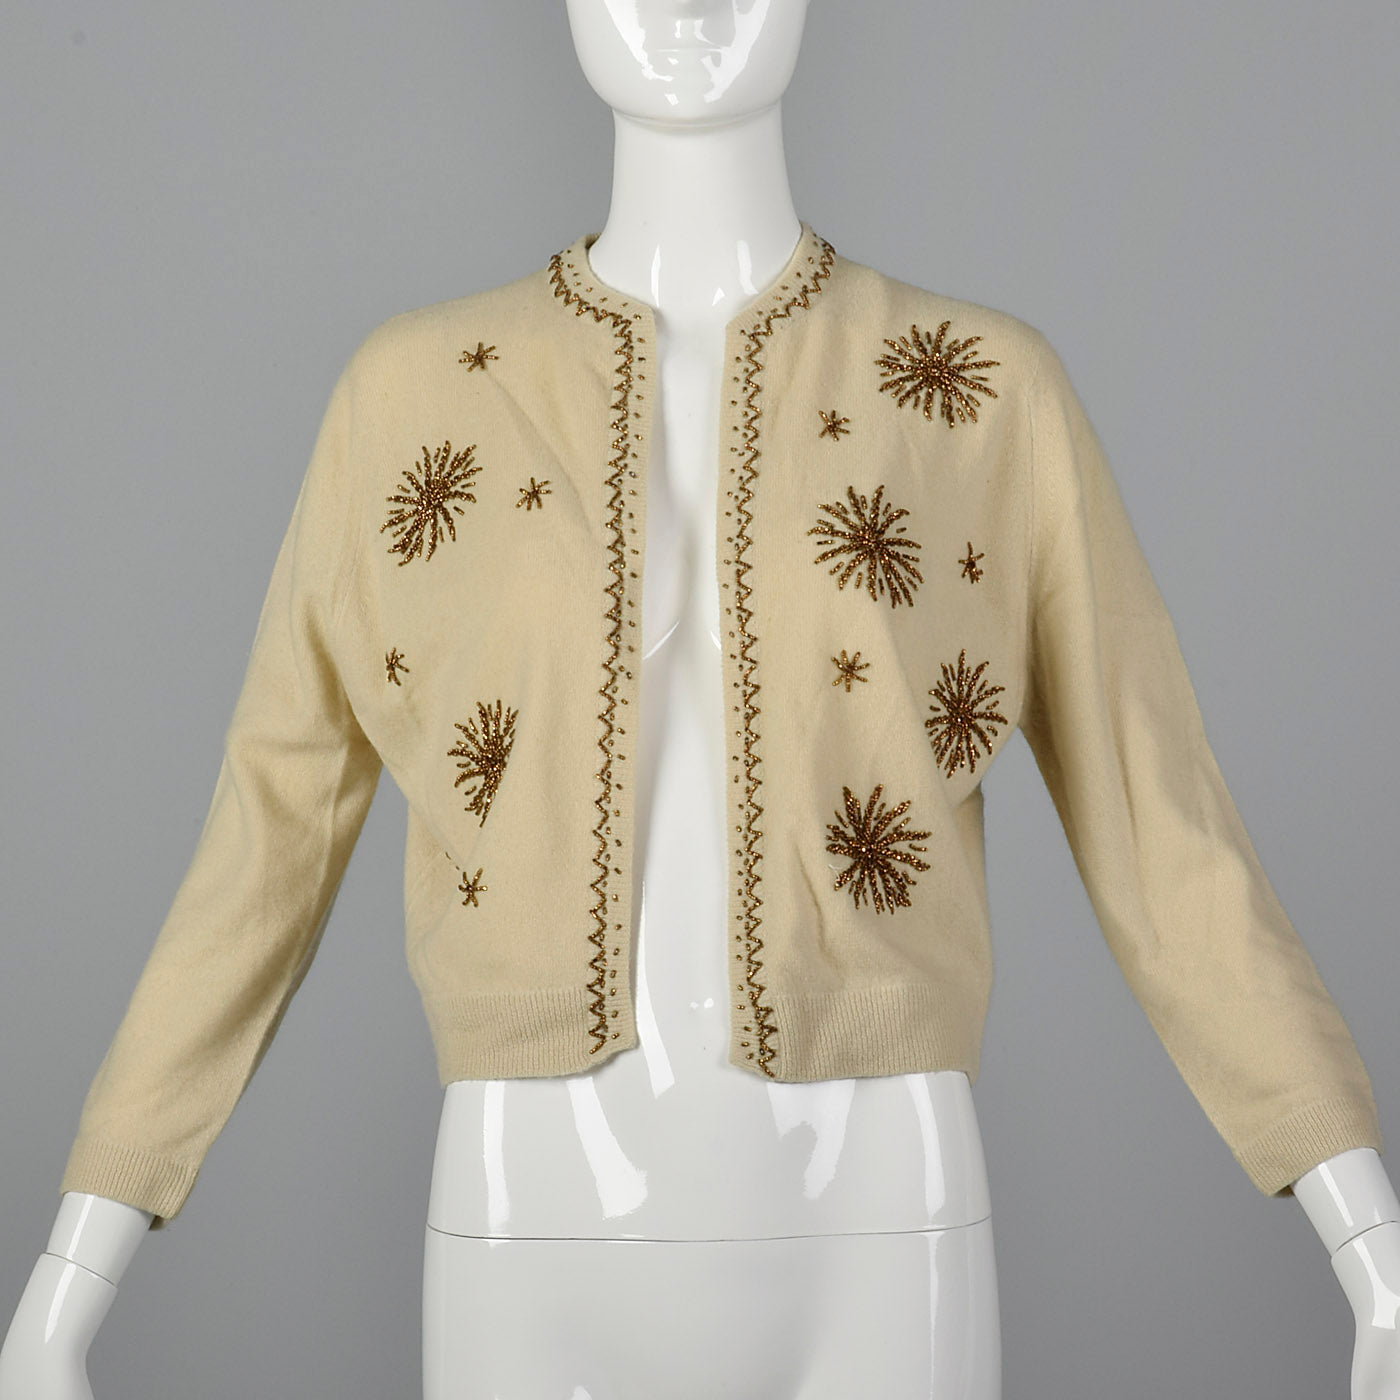 1950s Beaded Cashmere Cardigan